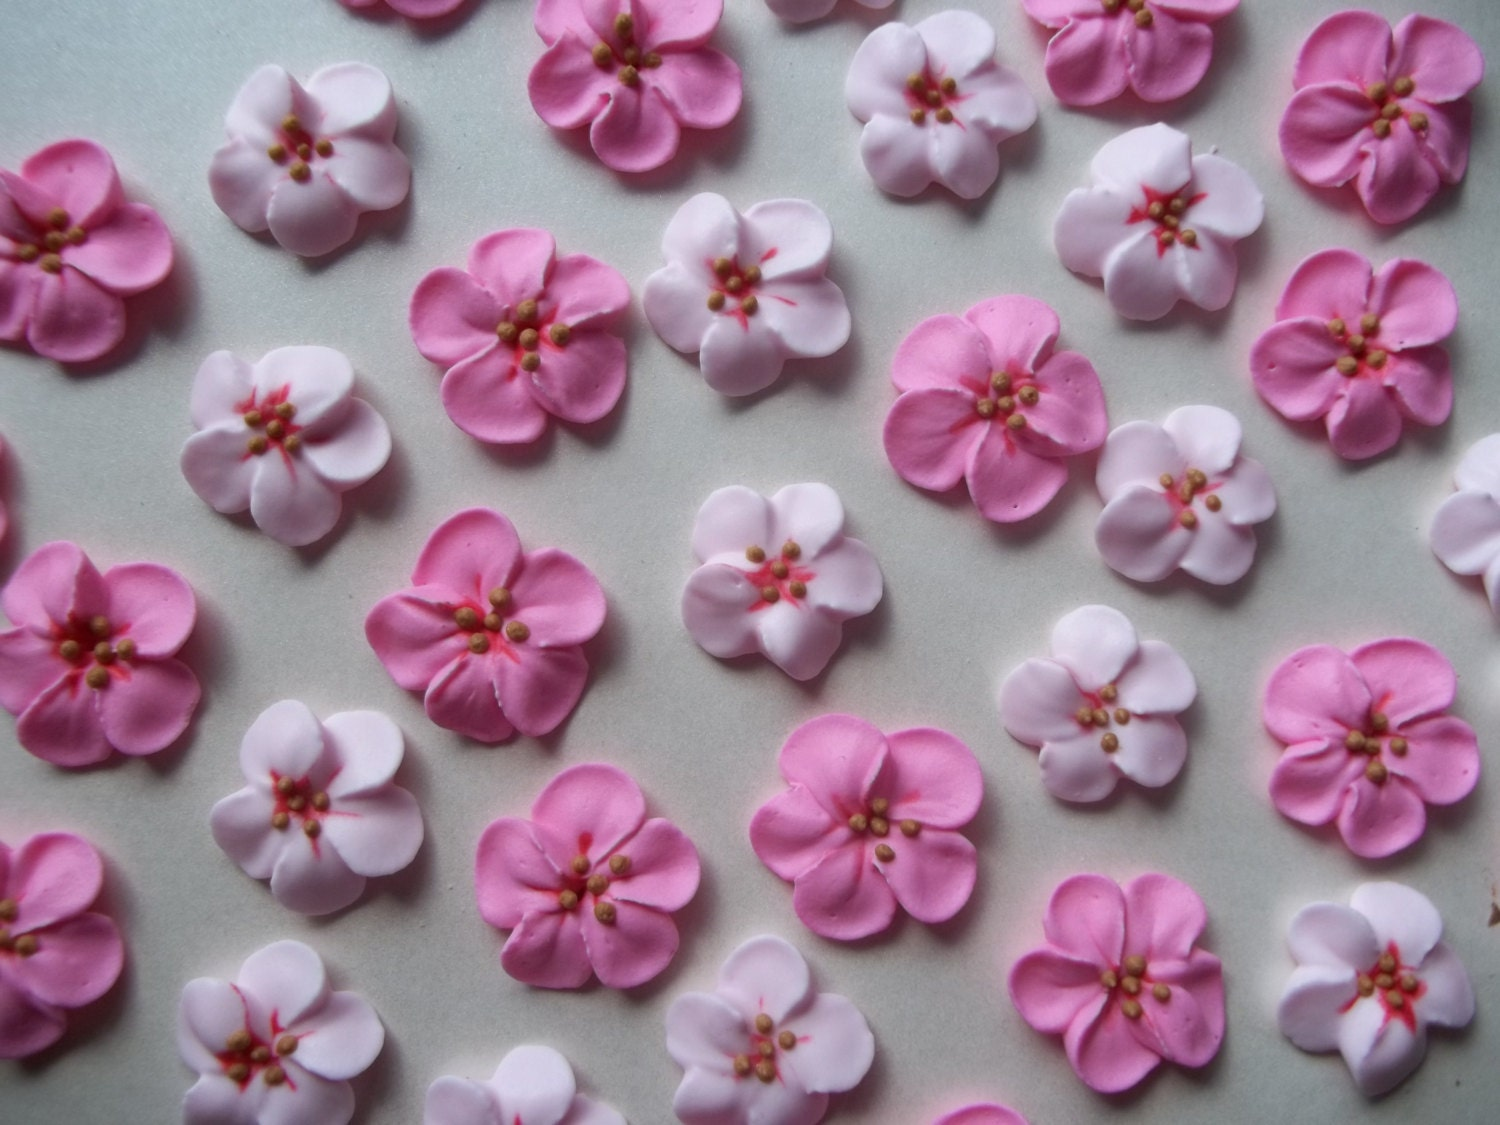 Cake Decorating Icing Nz : Royal icing cherry blossoms Cake by SweetSarahsBoutique on ...